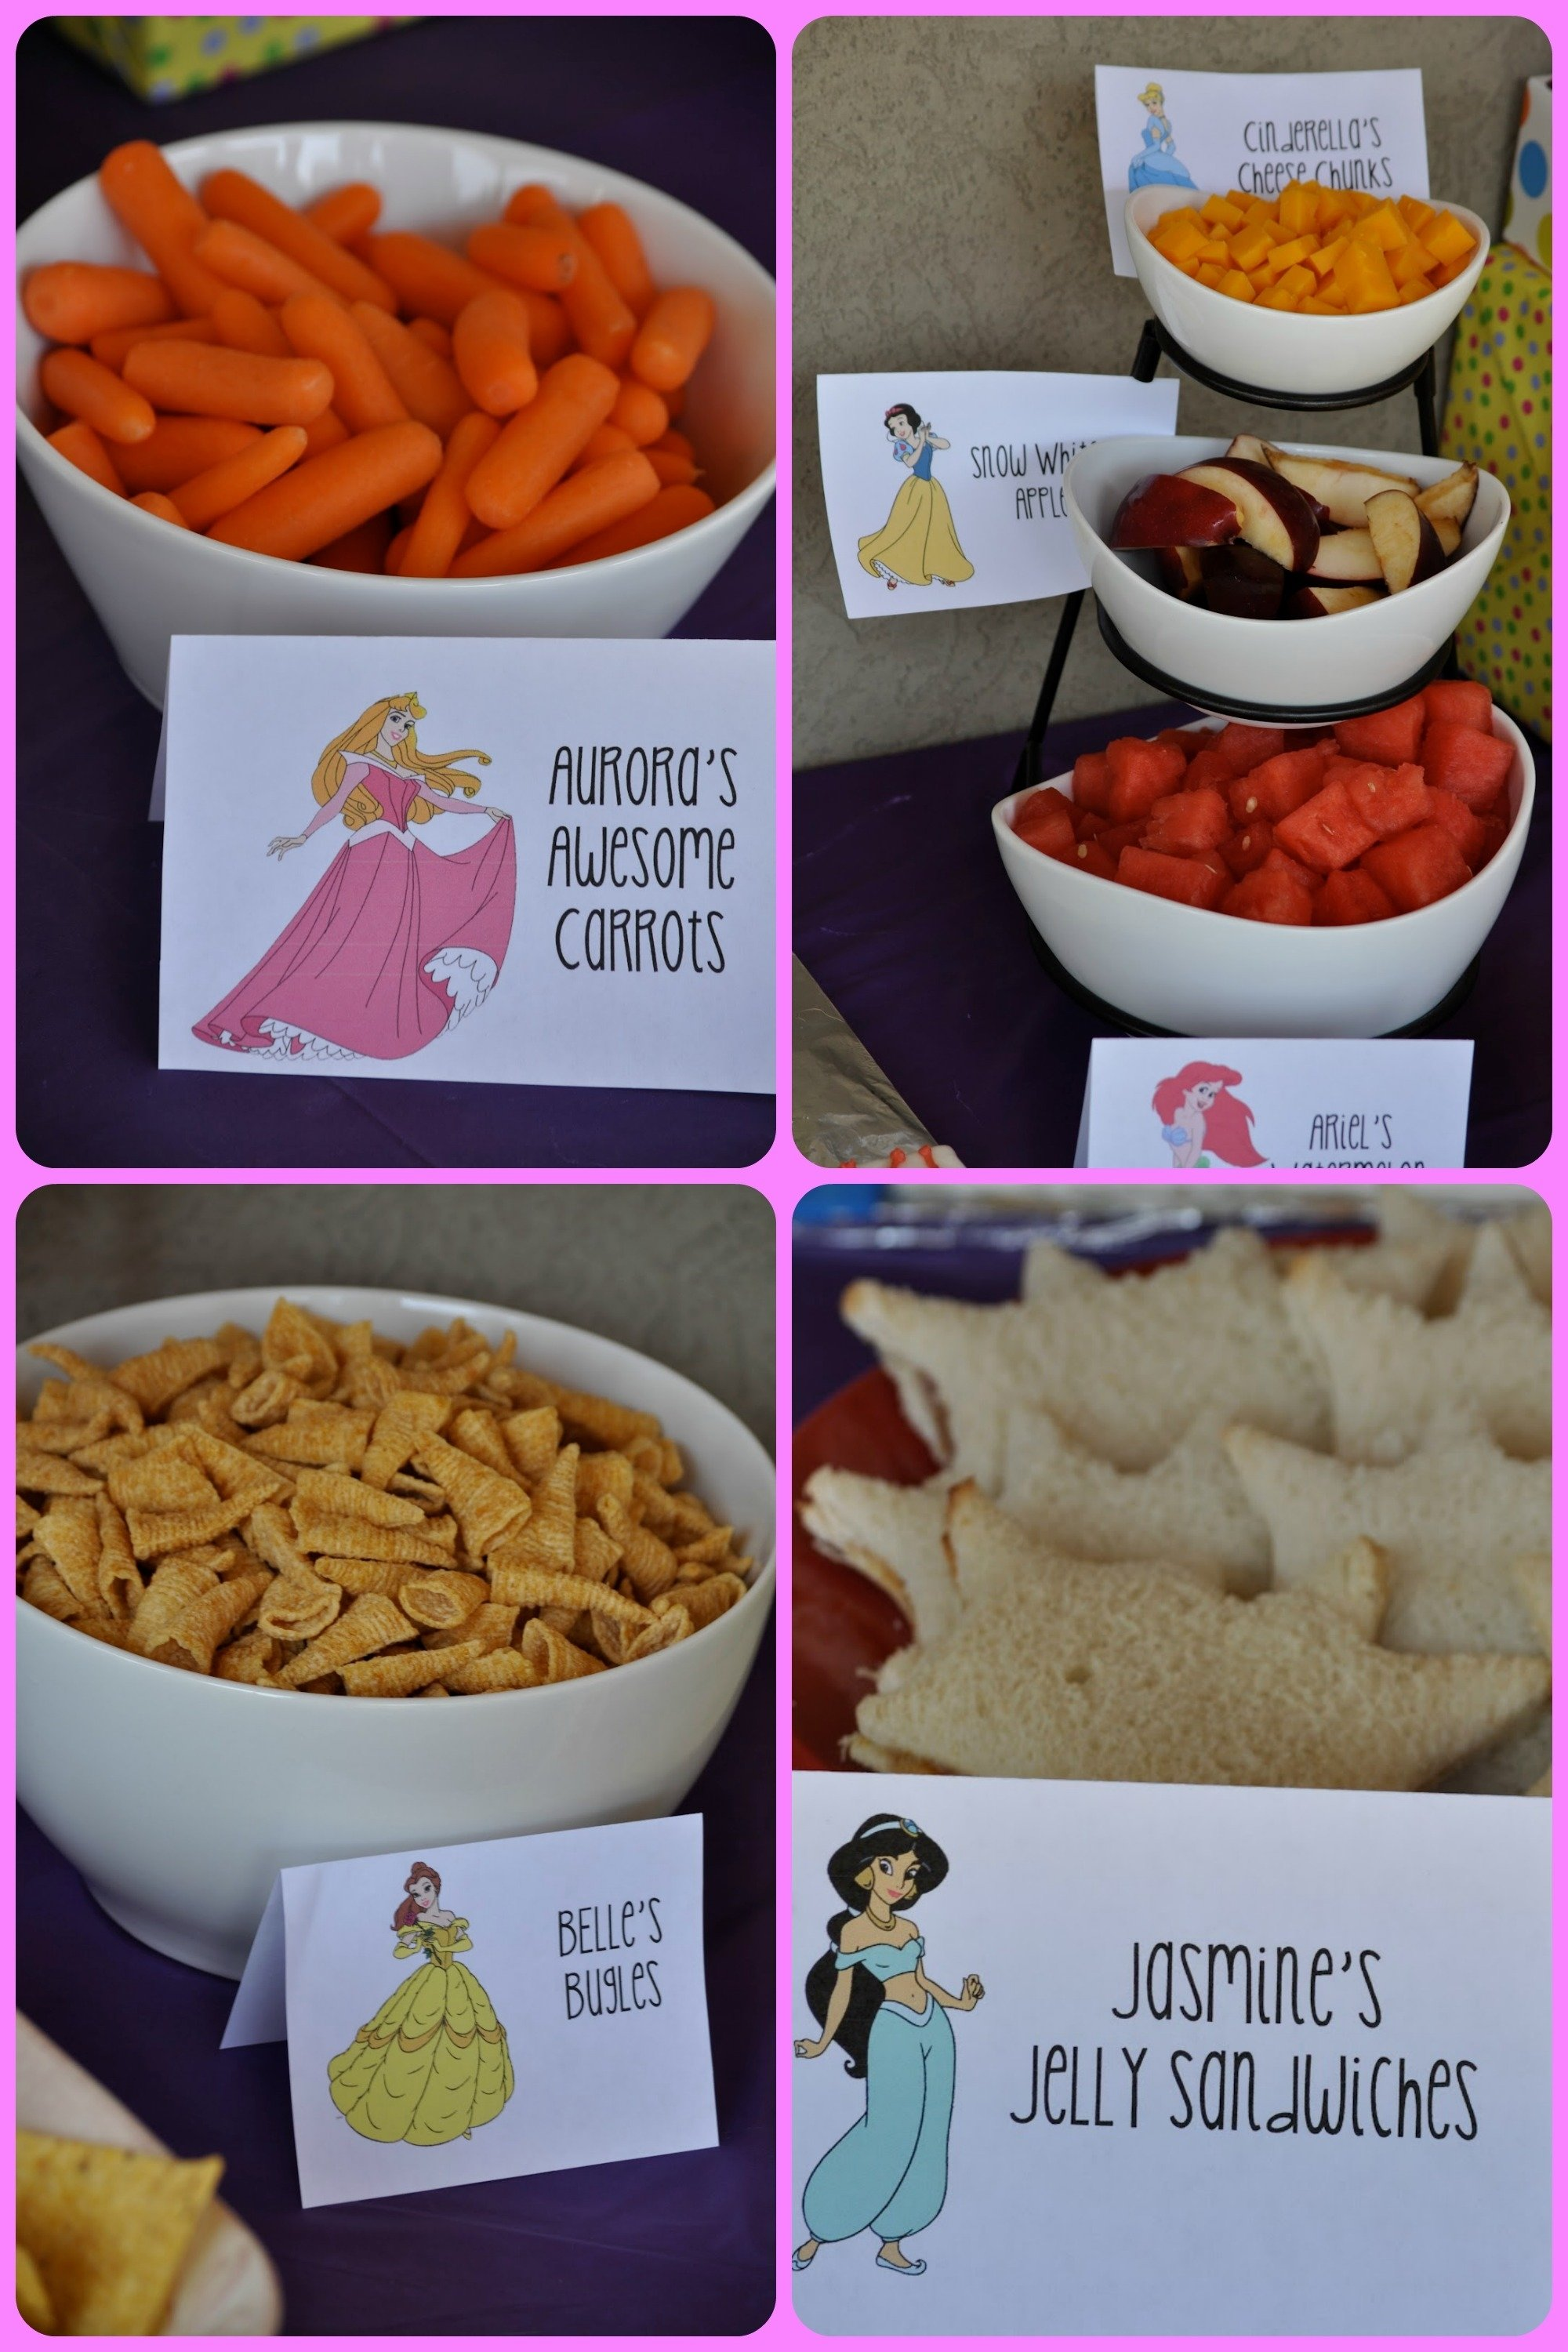 10 Attractive Disney Princess Party Food Ideas disney princess birthday party ideas archives events to celebrate 1 2020